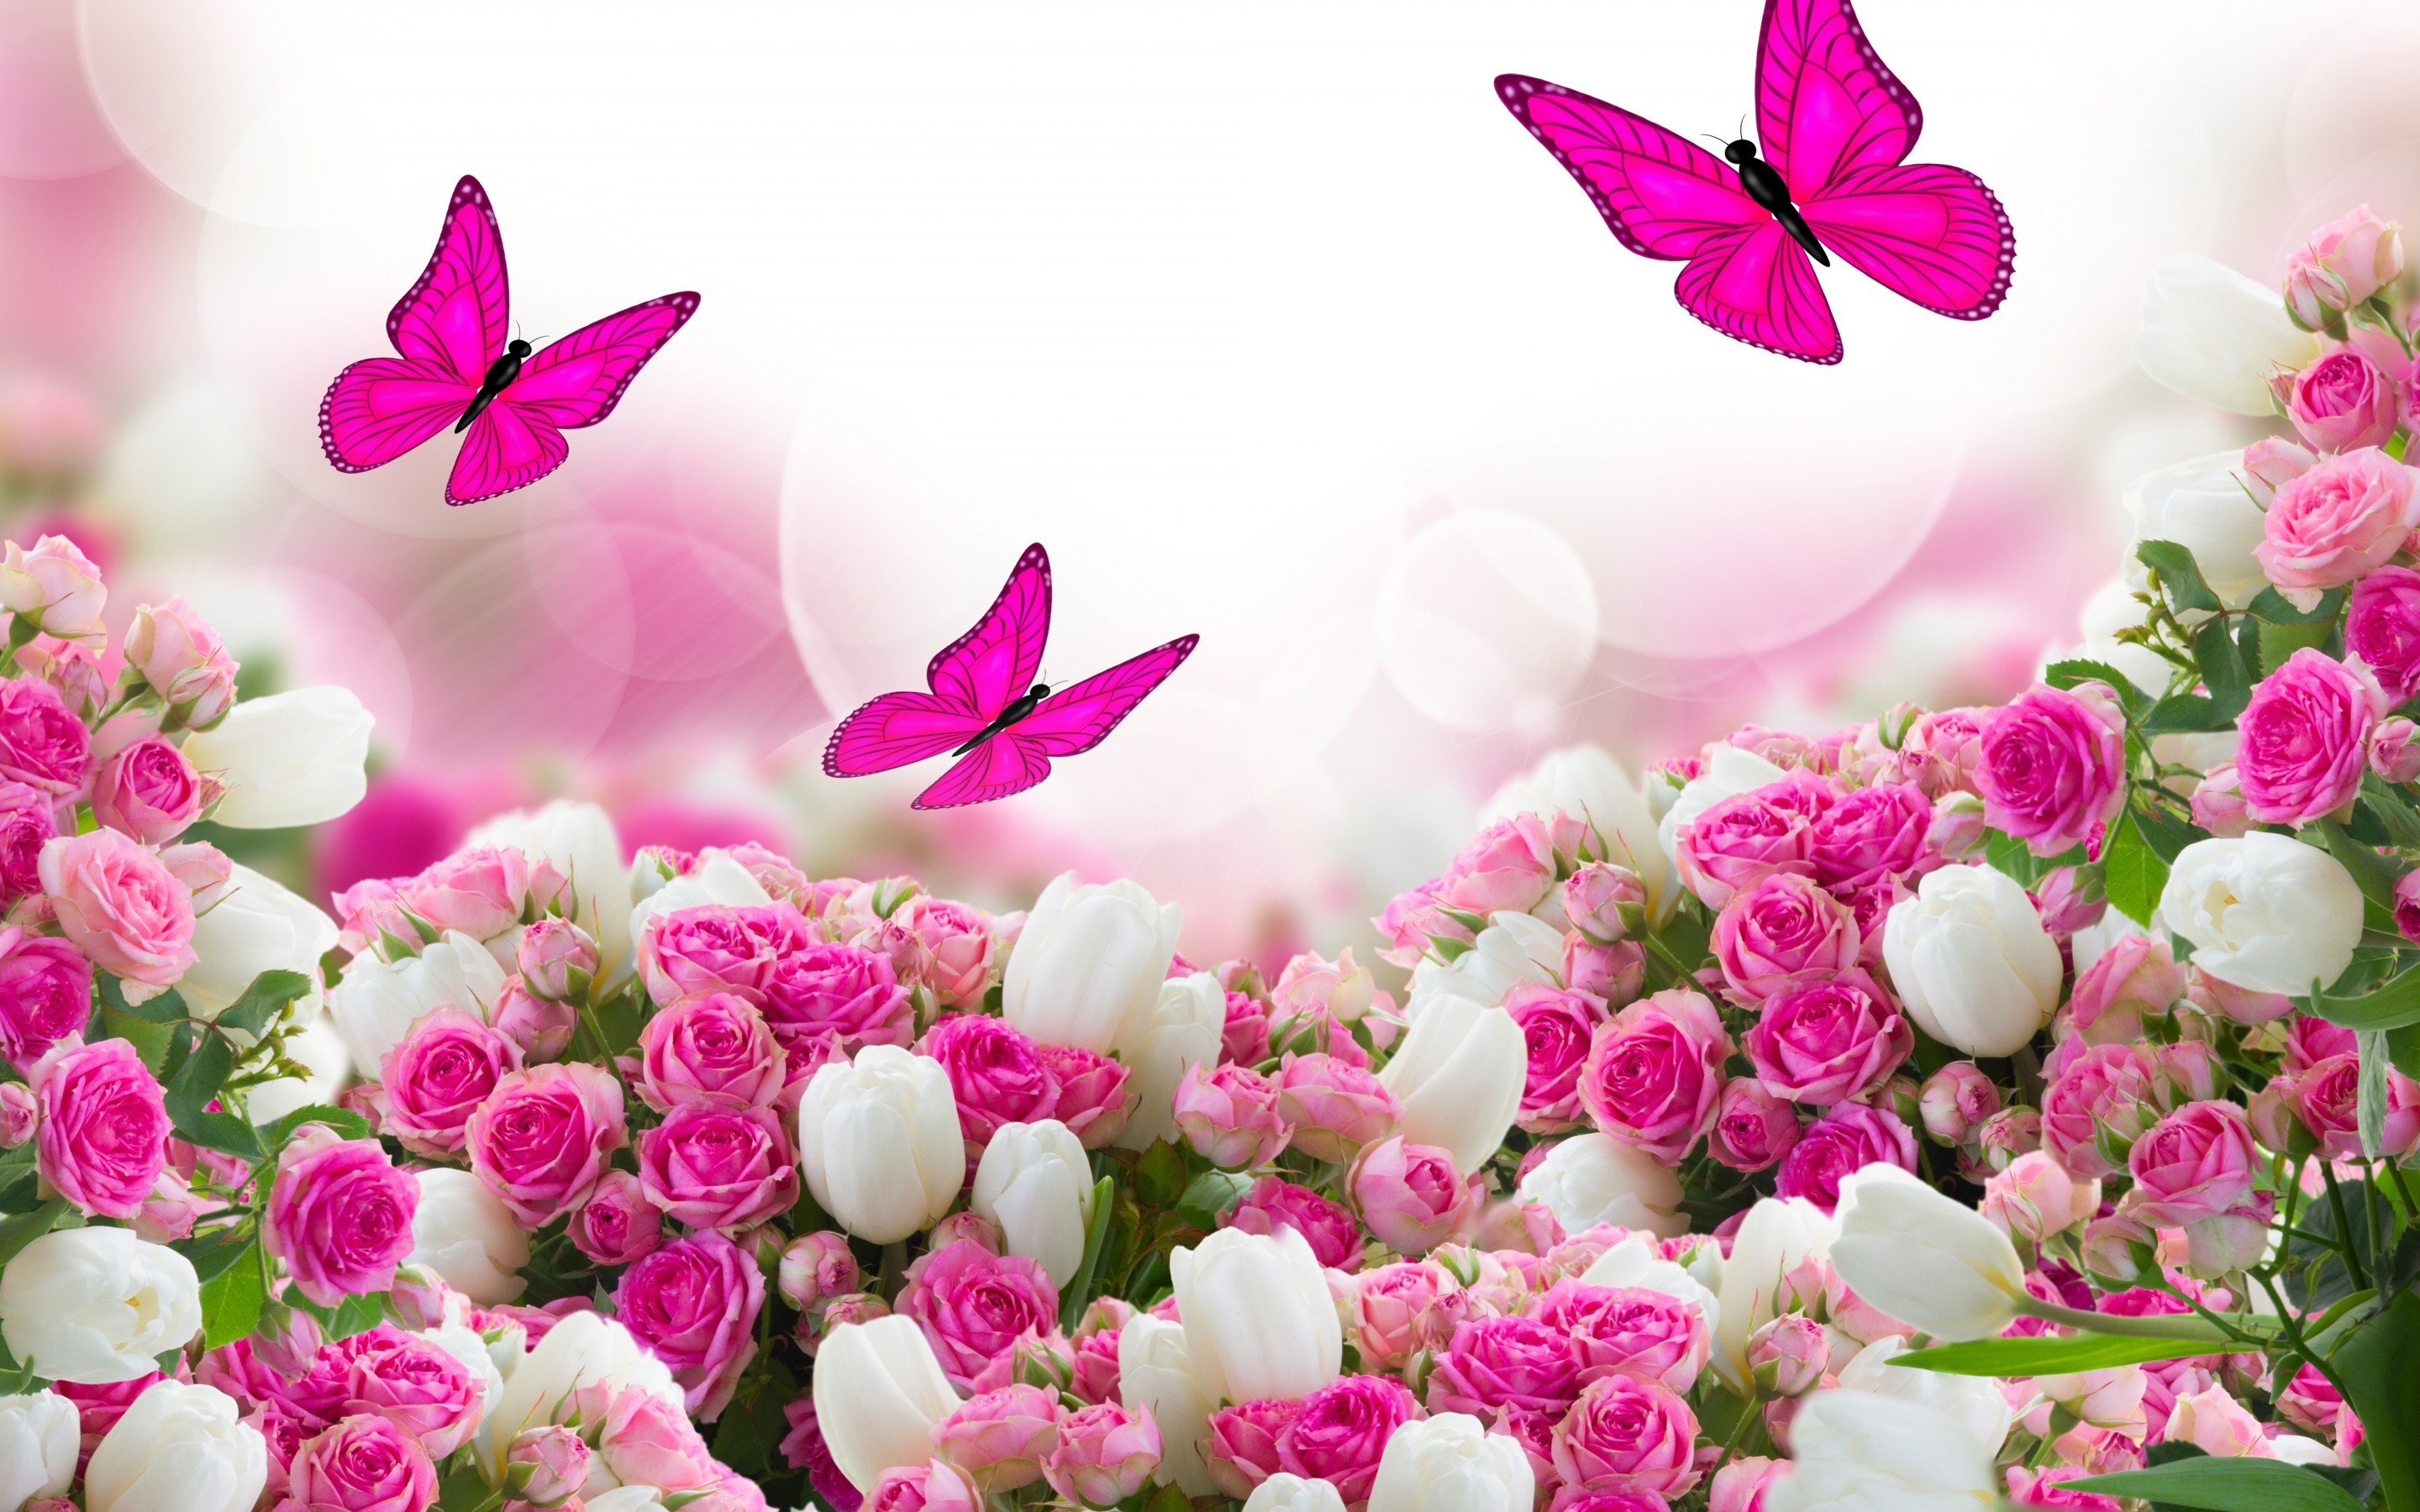 Res: 2880x1800, Wallpapers-Of-Beautiful-Flowers-Gallery-(81-Plus)-PIC-WPW3010103